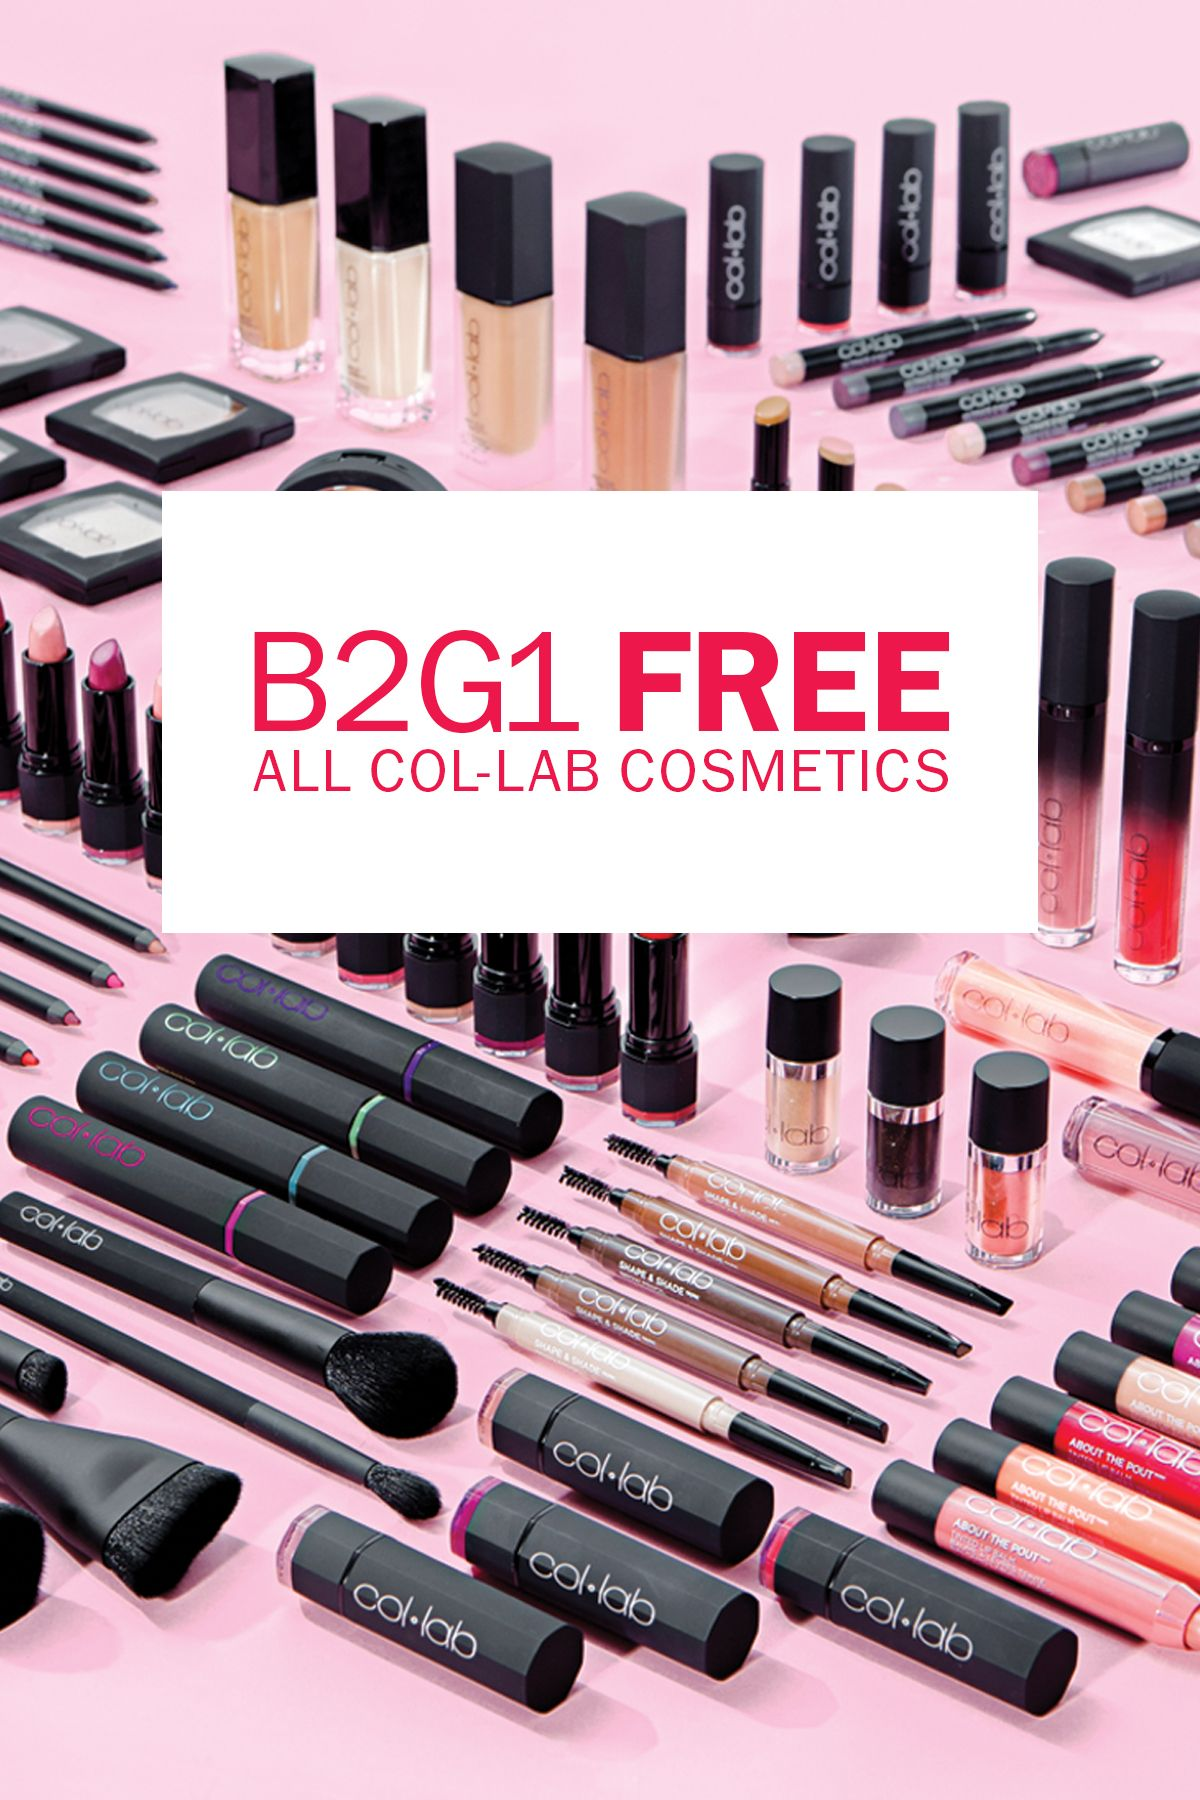 New. Created by Beauty Influencers. COLLAB is B2G1 Free